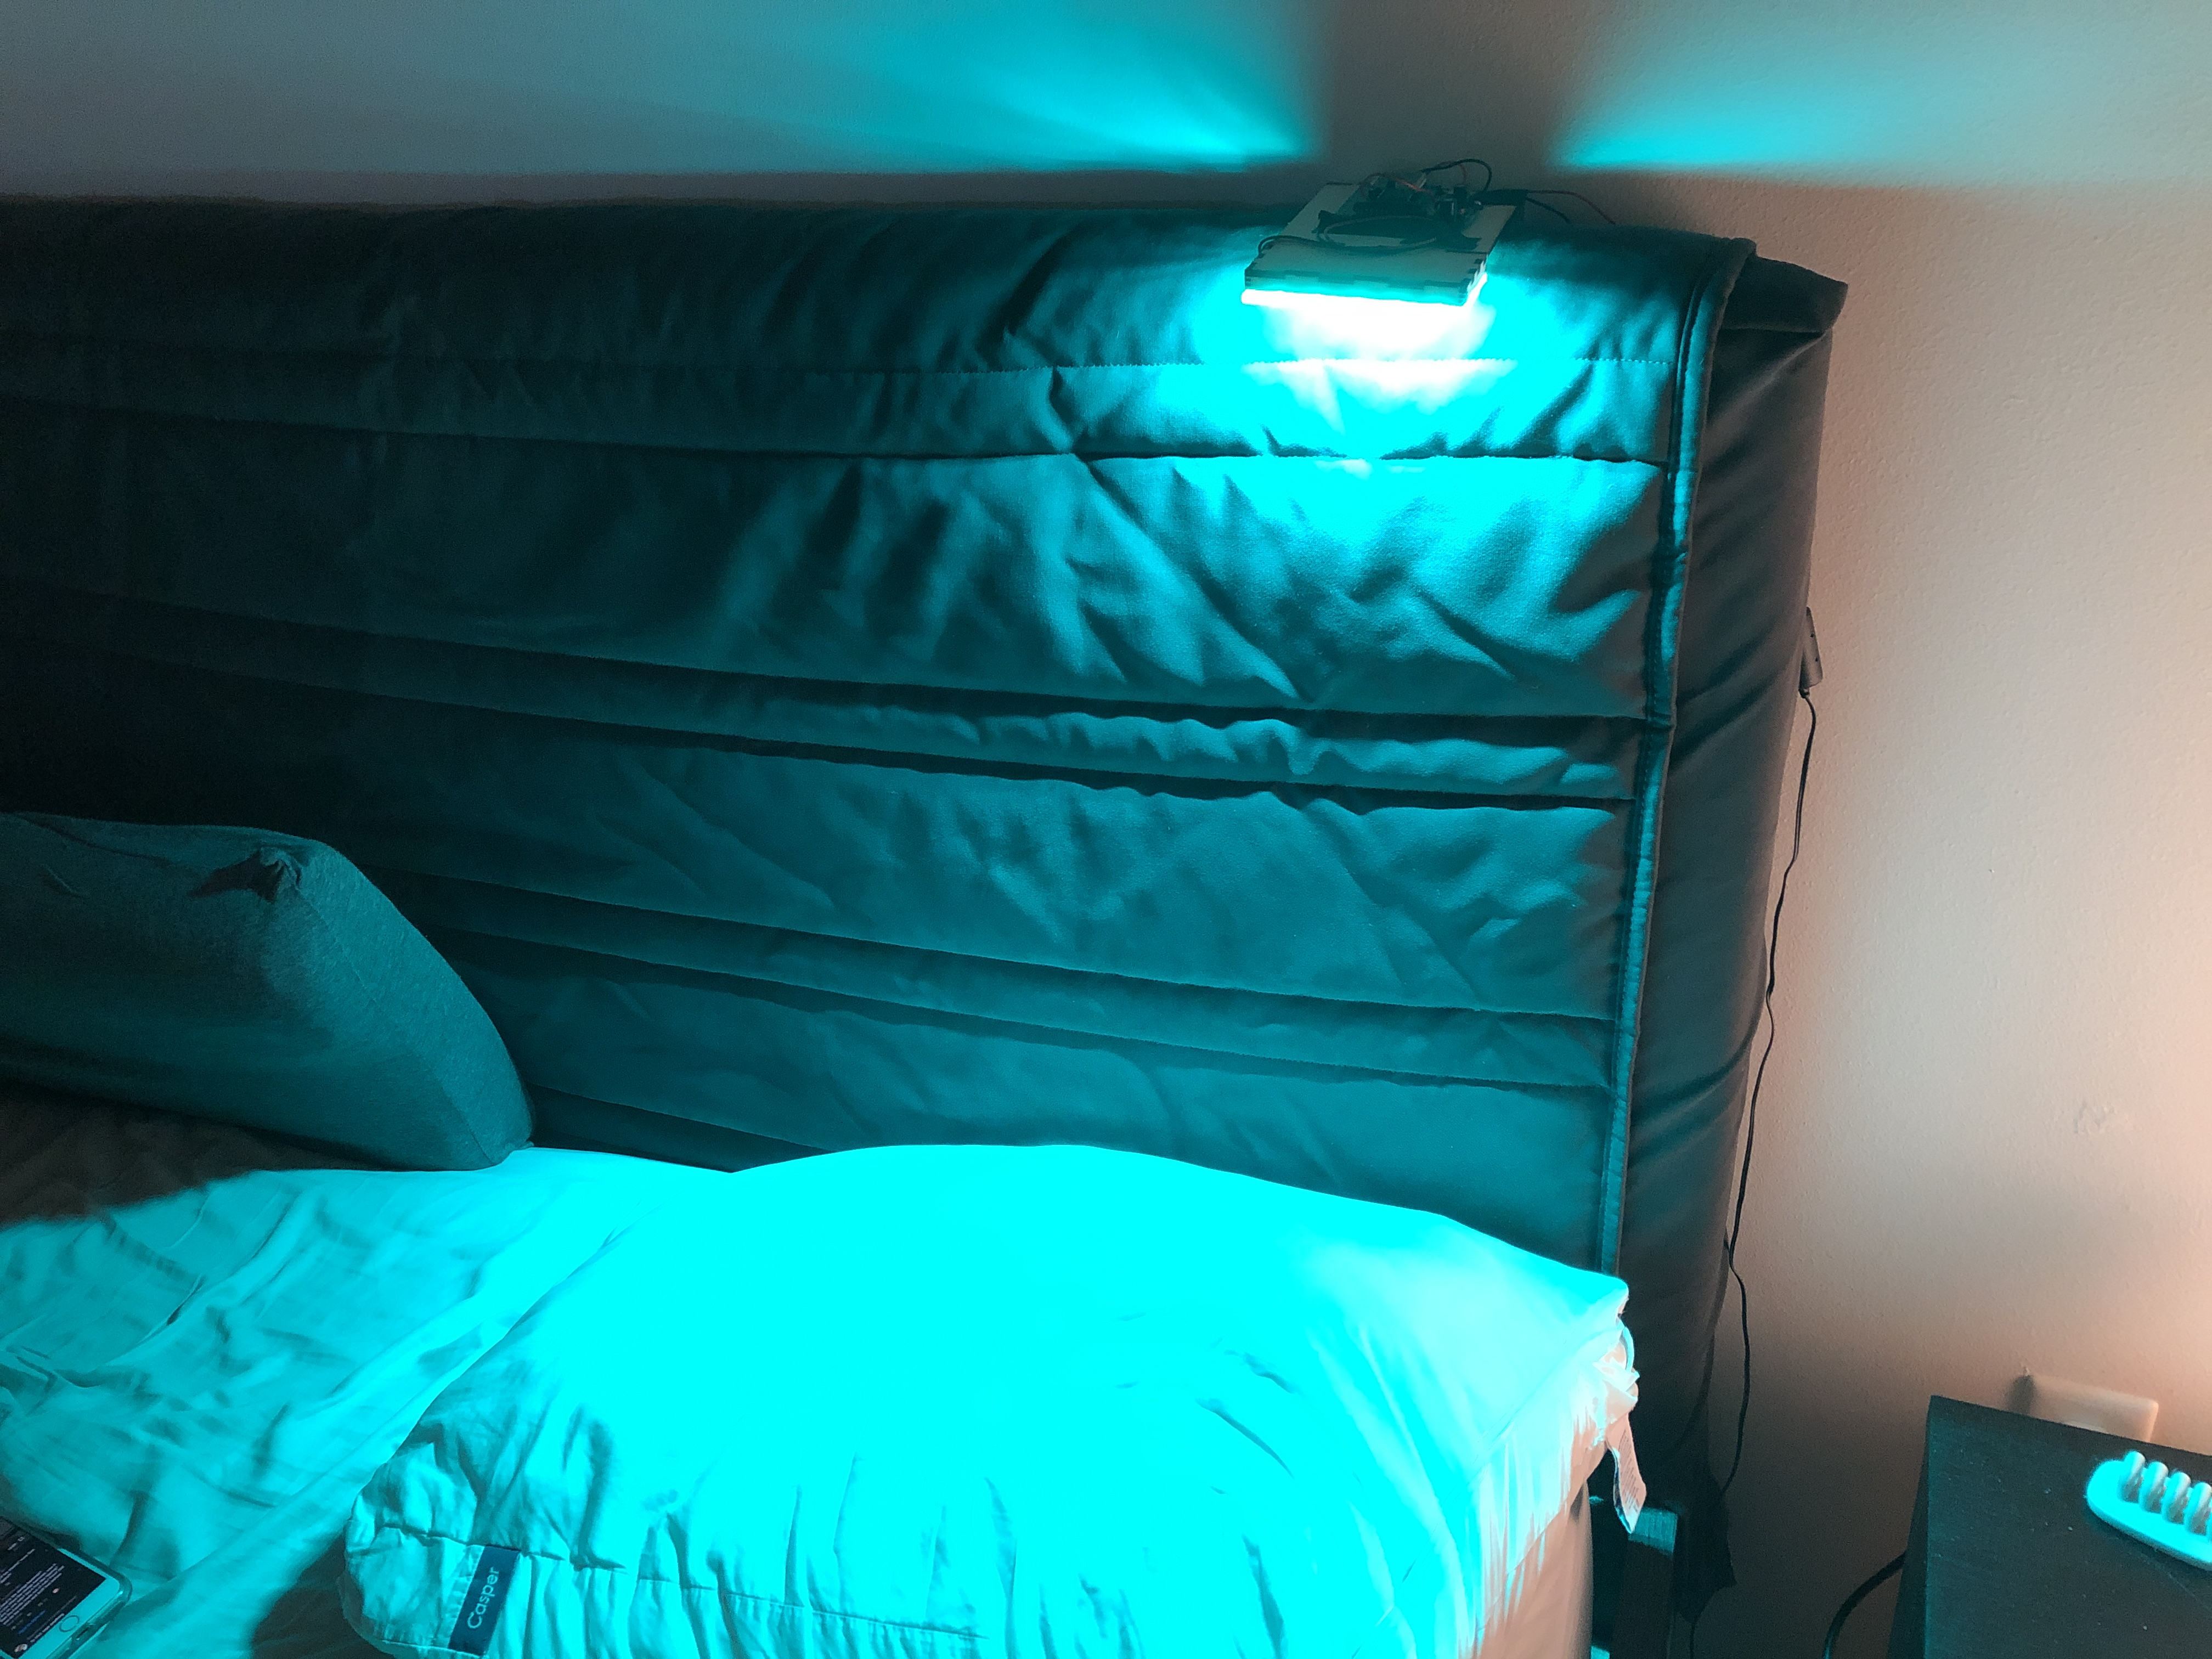 Lights mounted above bed